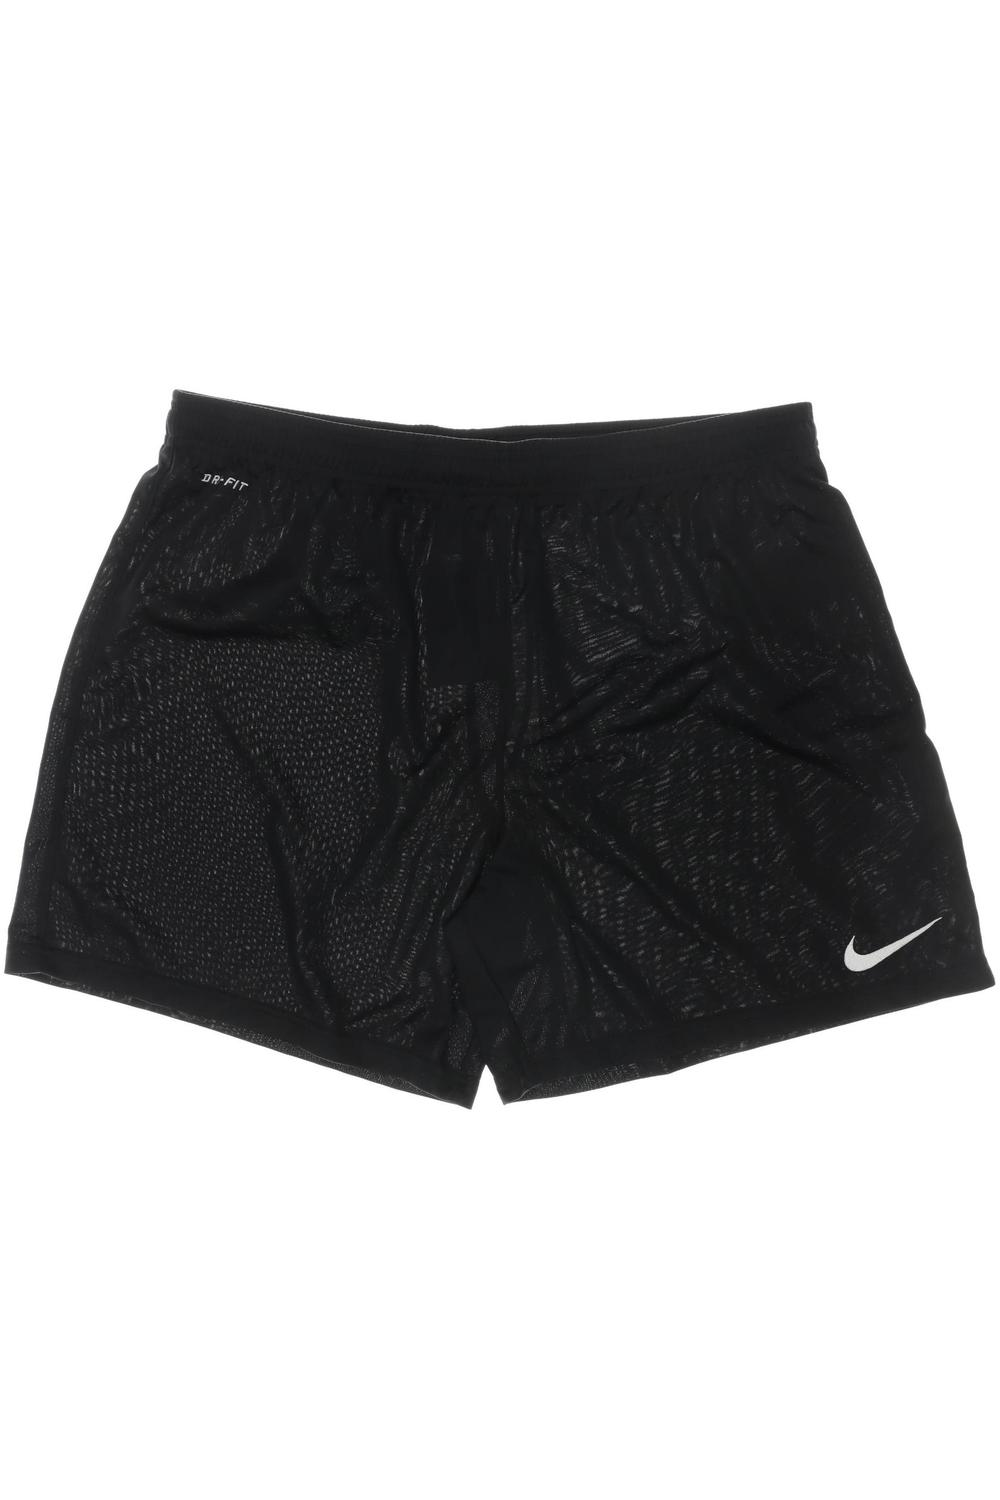 Nike Herren Shorts INT XL Second Hand kaufen hFfSk